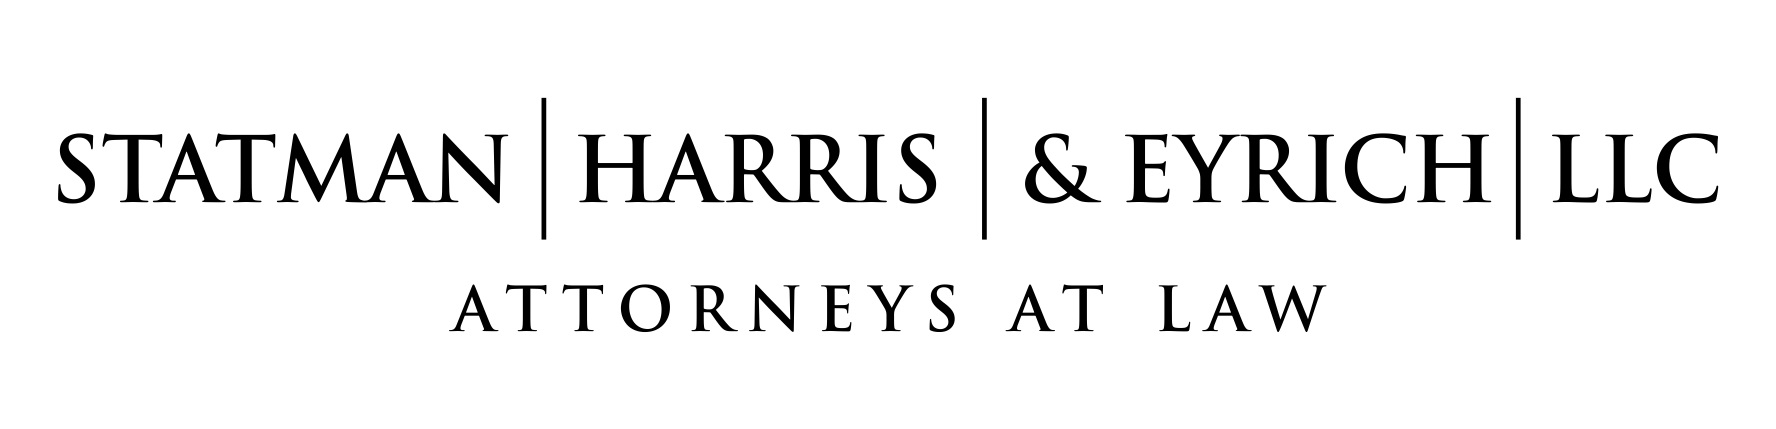 Statman, Harris & Eyrich, LLC. - Attorneys at Law